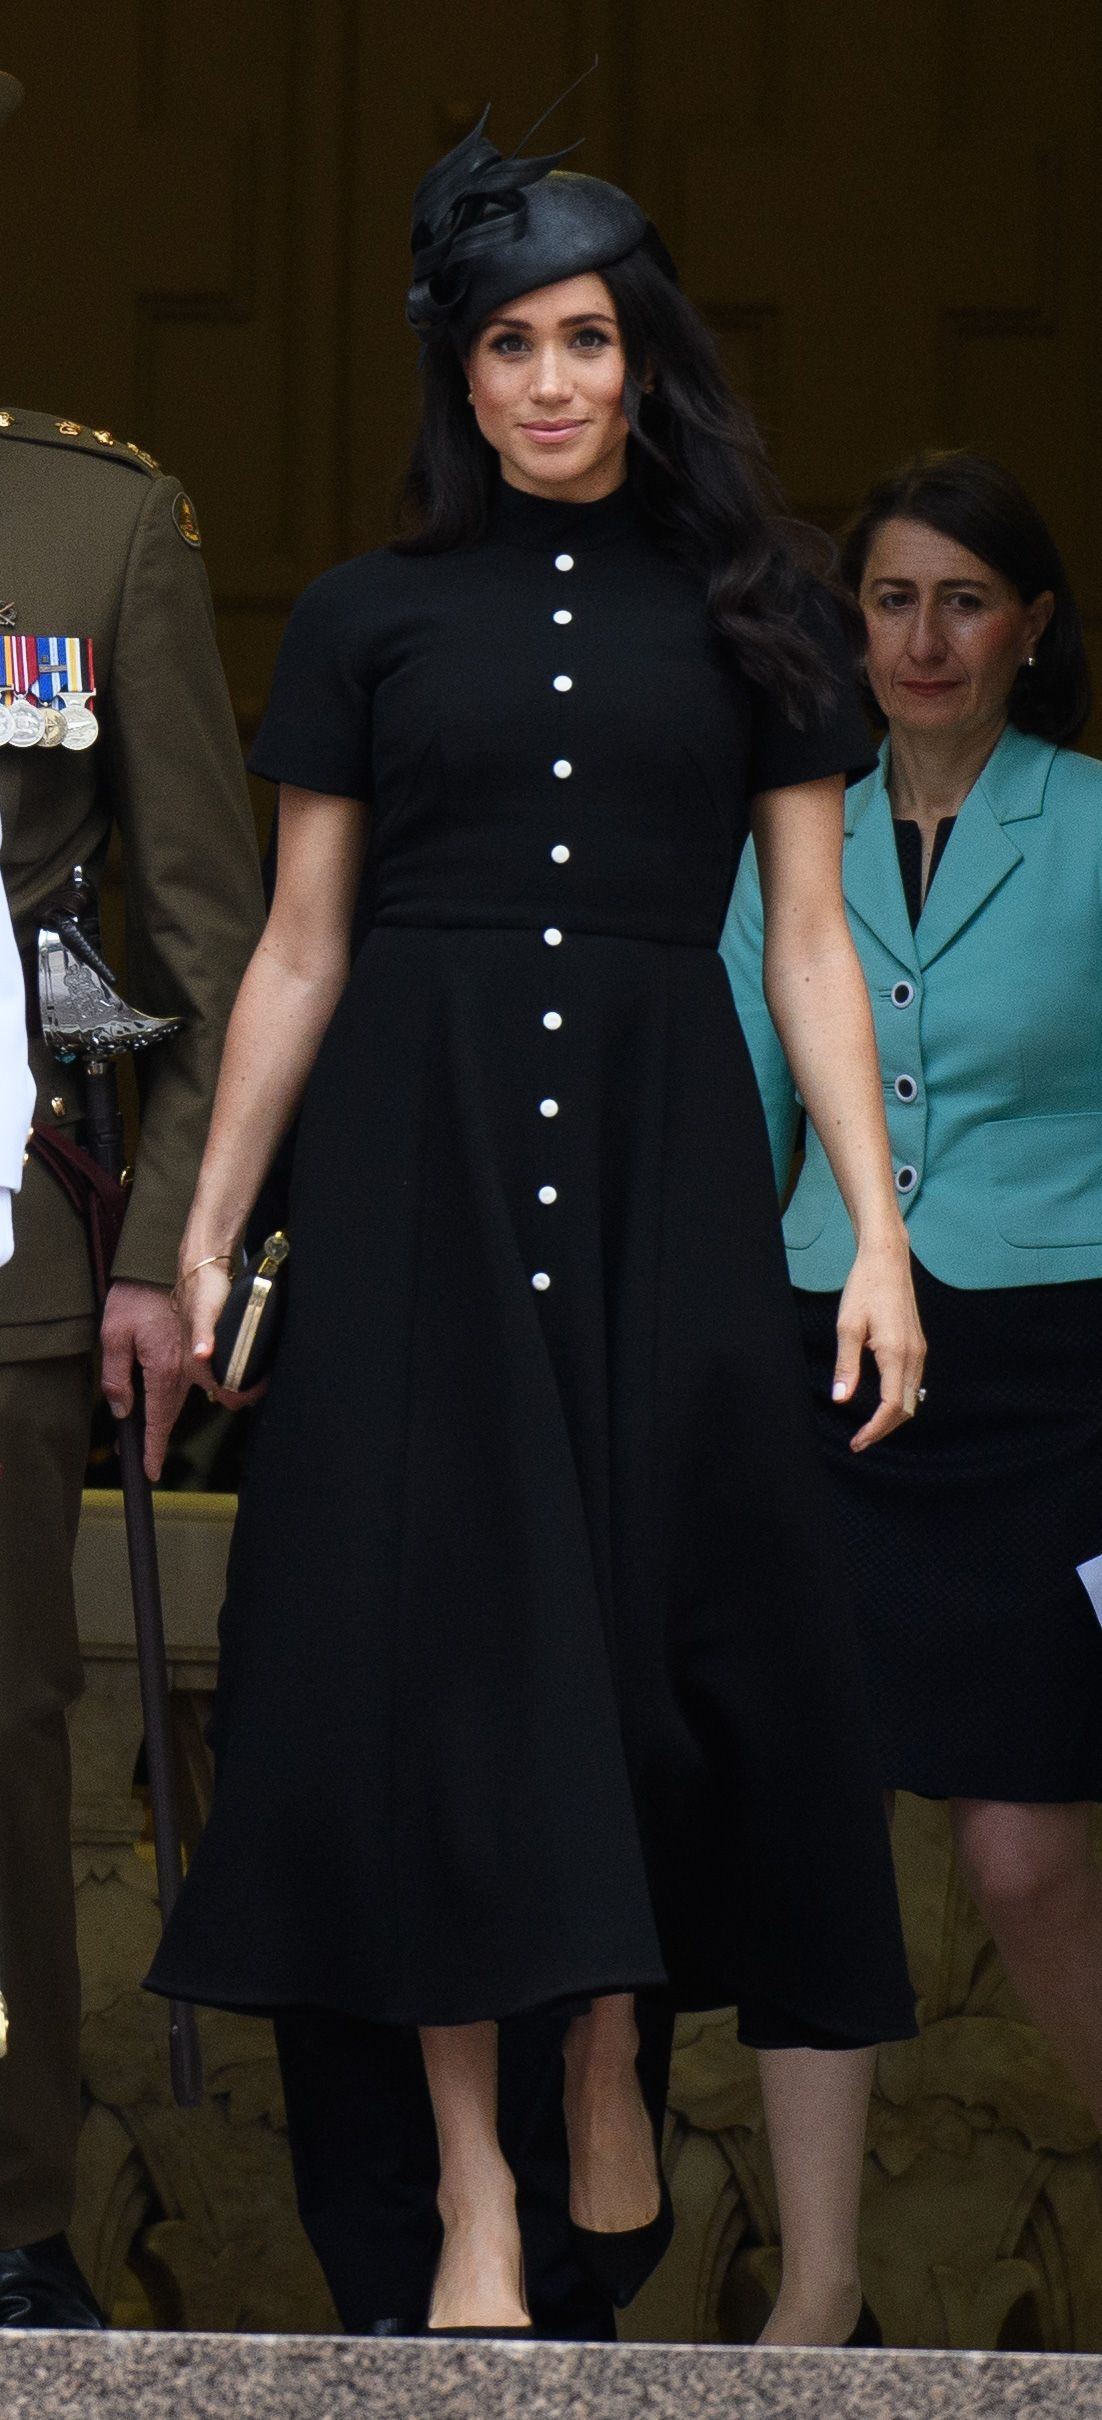 3c29b001bf6 Meghan Markle s Black Emilia Wickstead Dress Is The Same Style As One Worn  By Prince Harry s Reported Ex